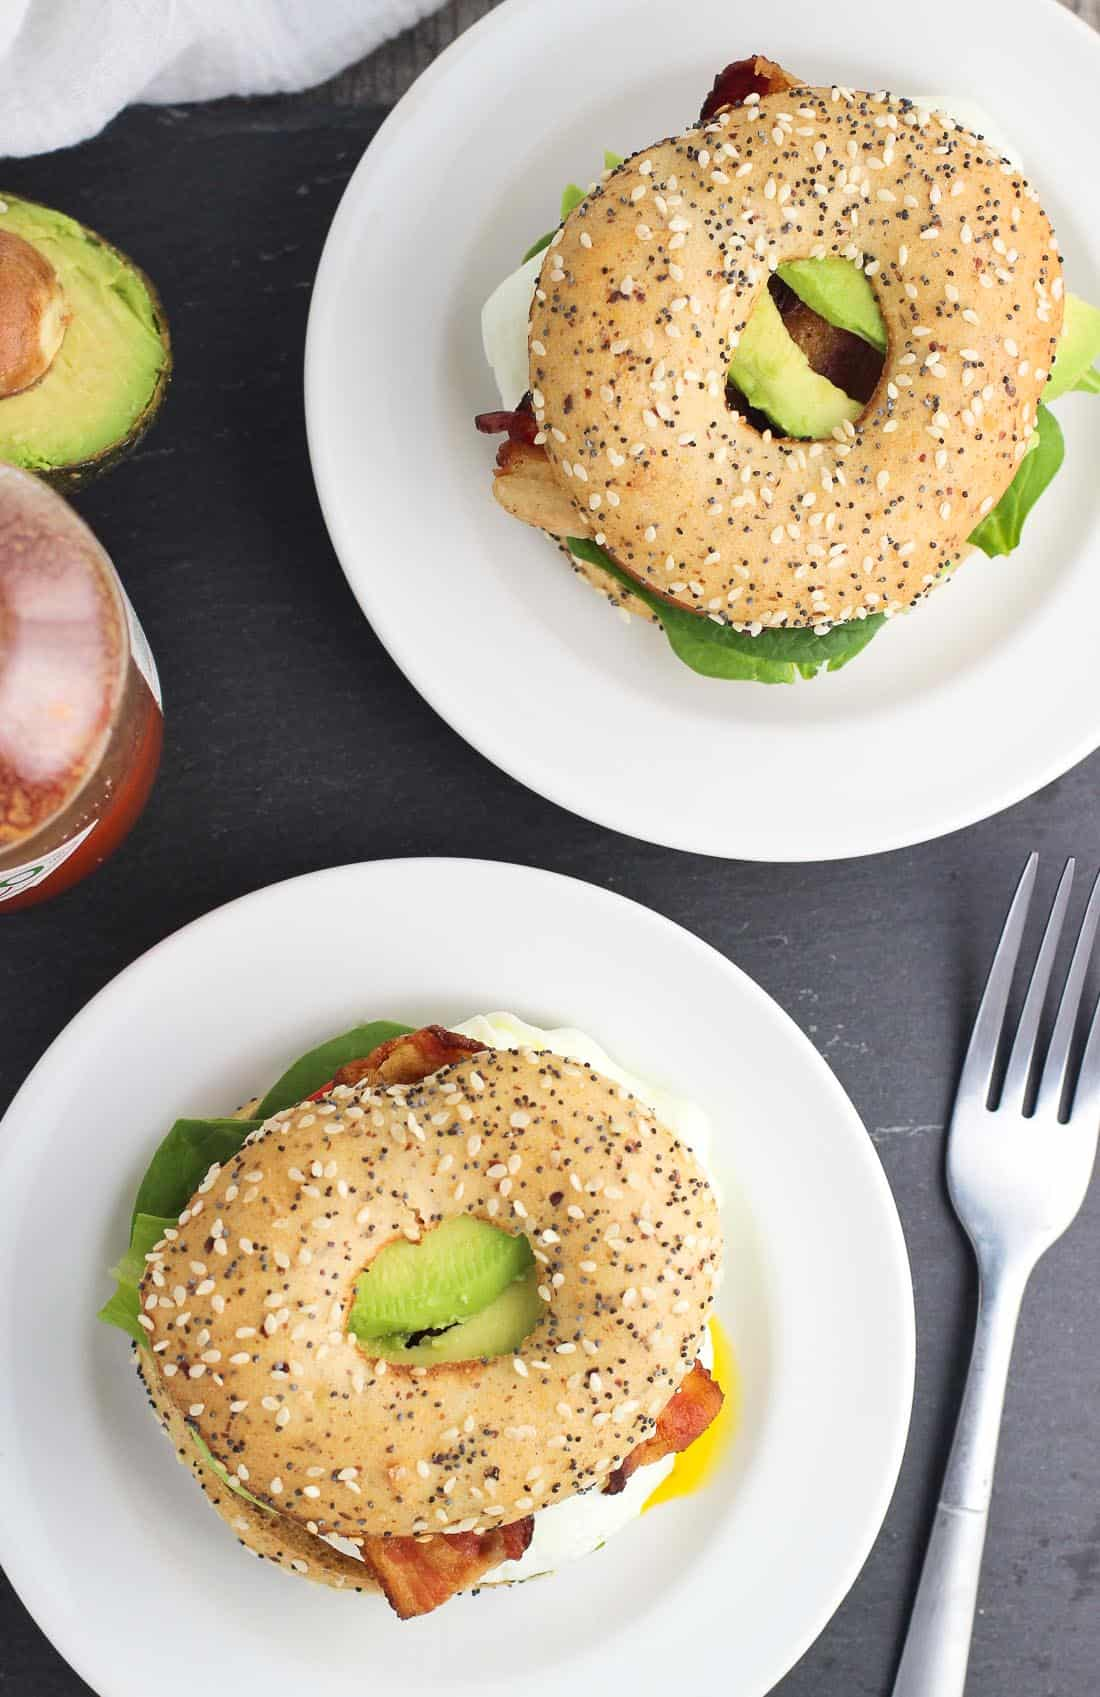 This BLT Breakfast Sandwich is a delicious update to a breakfast staple! An over easy egg is joined by the classic BLT trifecta of bacon, lettuce, and a juicy tomato slice, topped with avocado, and piled high on a toasted bagel thin. This packed breakfast sandwich is easy to make, and works well for any meal of the day.